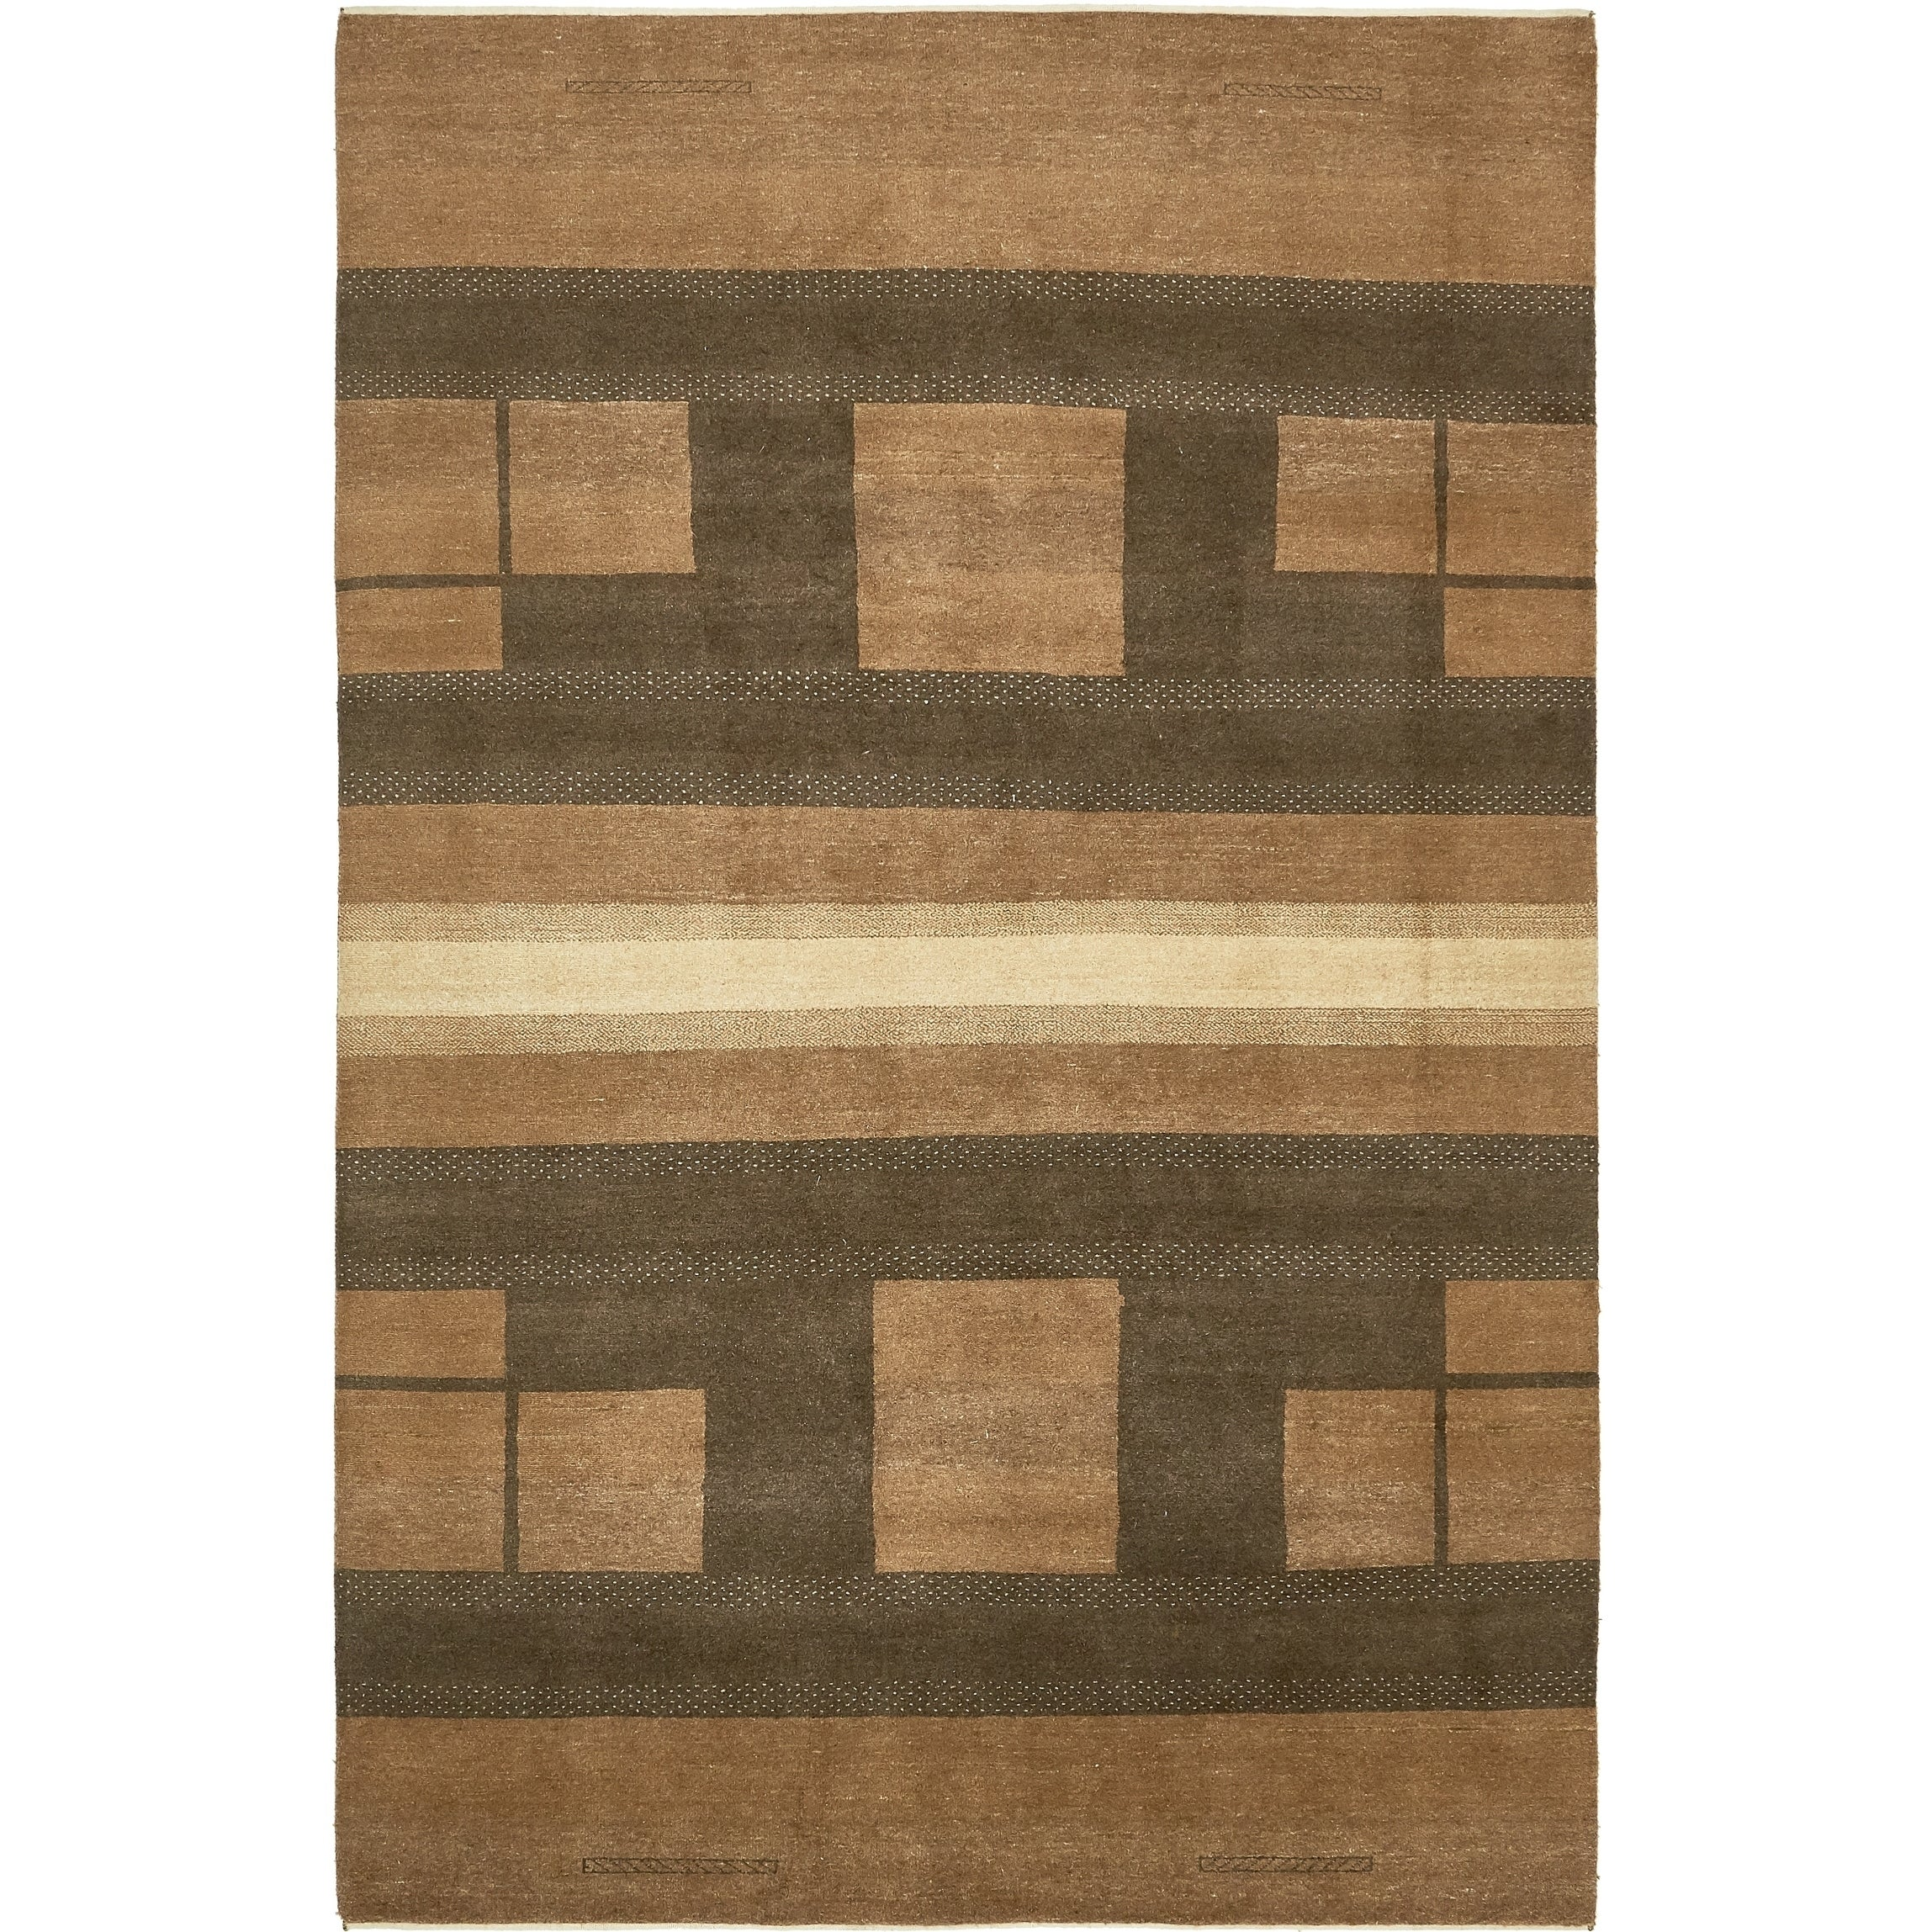 Hand Knotted Kashkuli Gabbeh Wool Area Rug - 6 4 x 9 7 (Brown - 6 4 x 9 7)